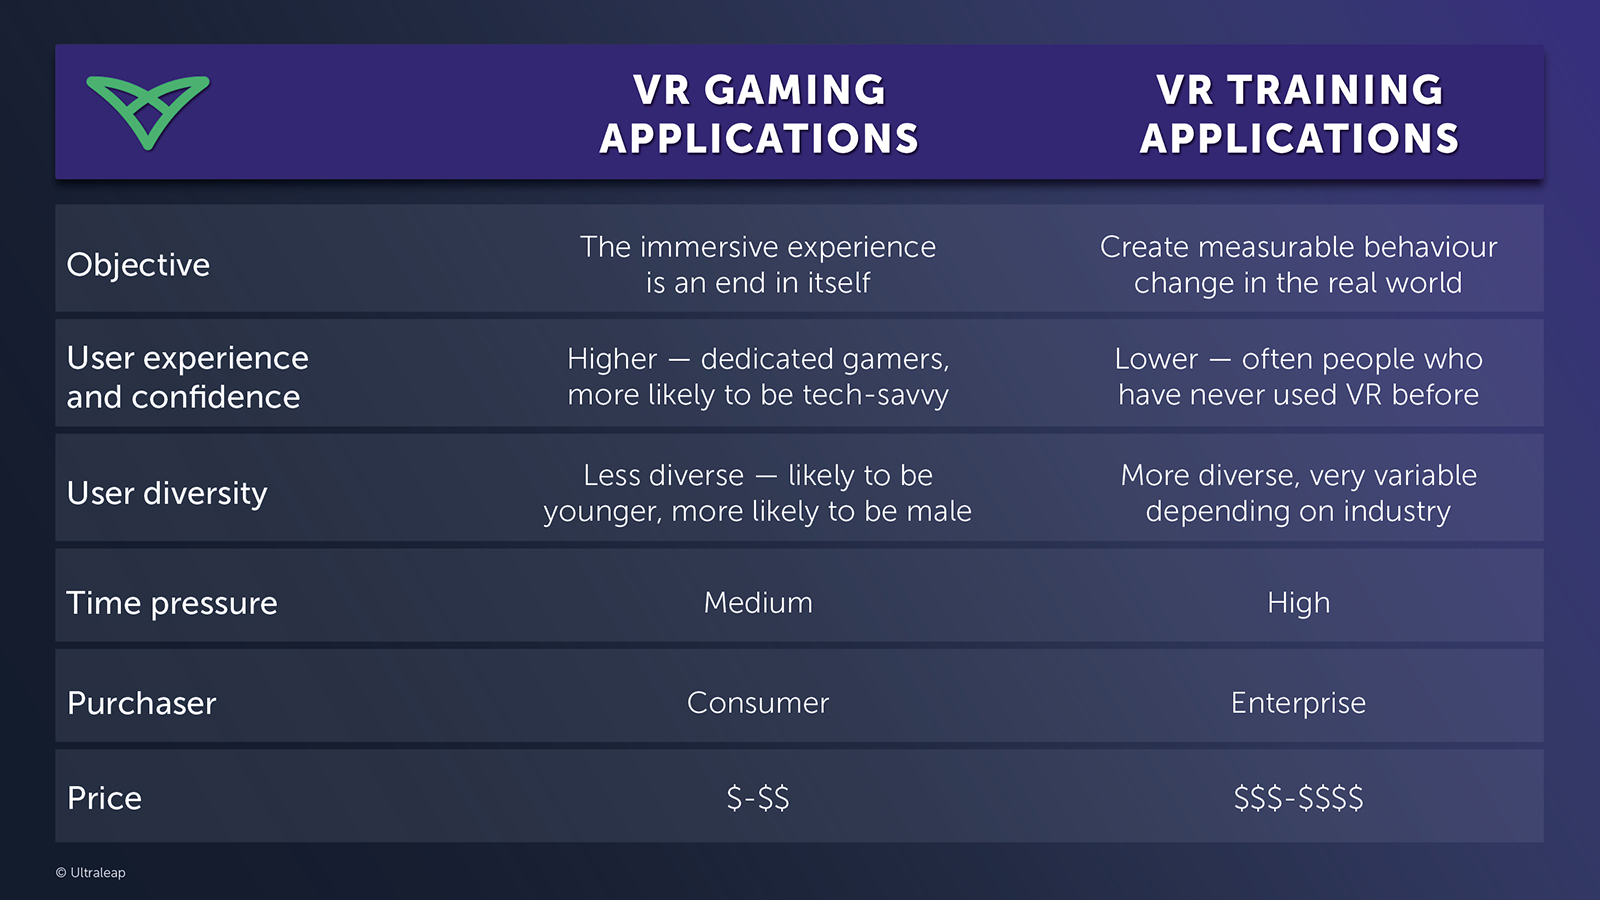 Examples of vr for training applications in a table